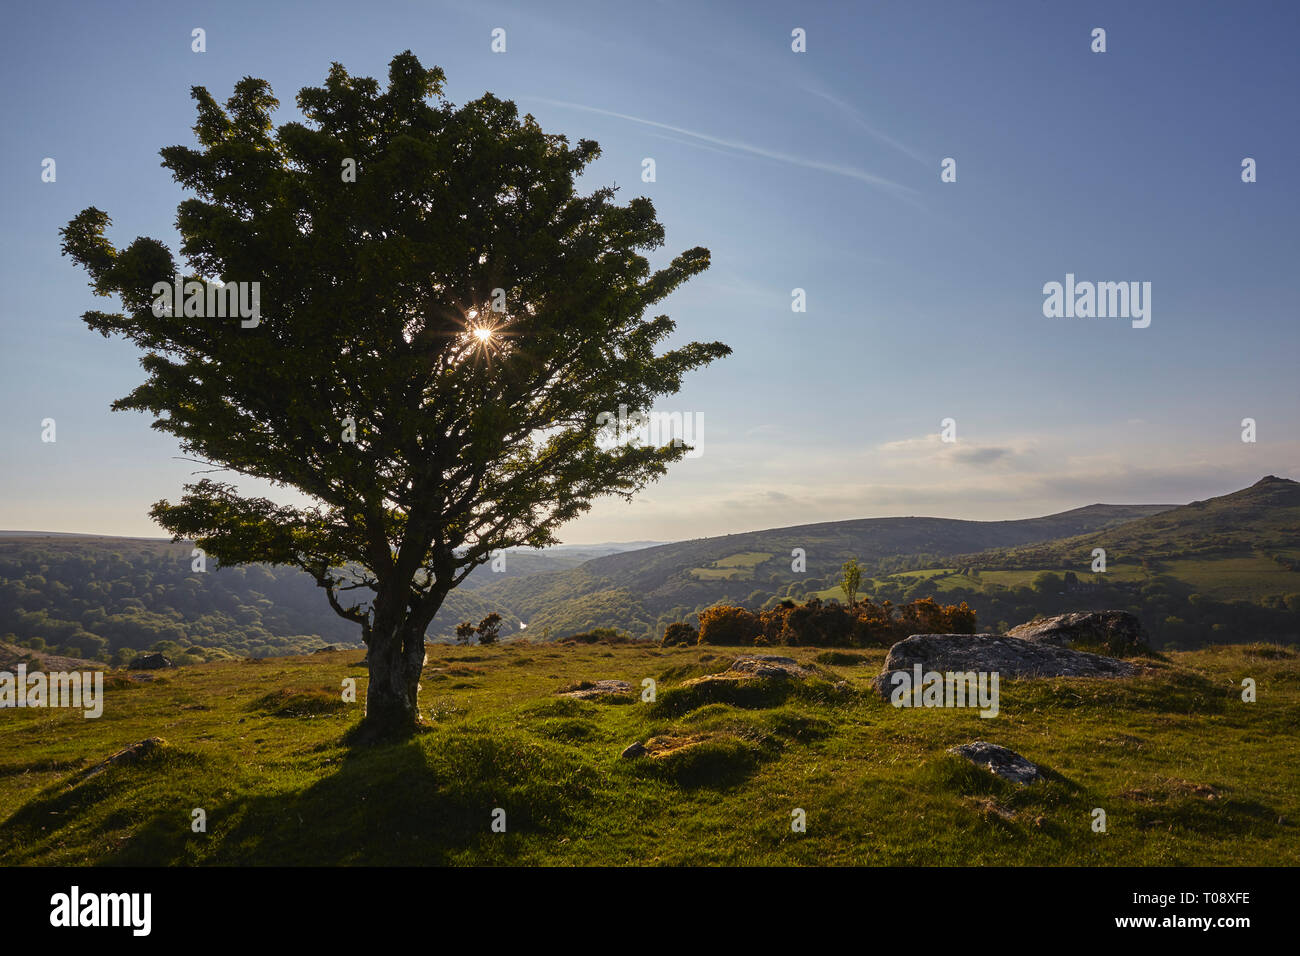 A hawthorn tree silhouetted against a low sun, on Bench Tor, near Holne, Dartmoor National Park, Devon, Great Britain. - Stock Image